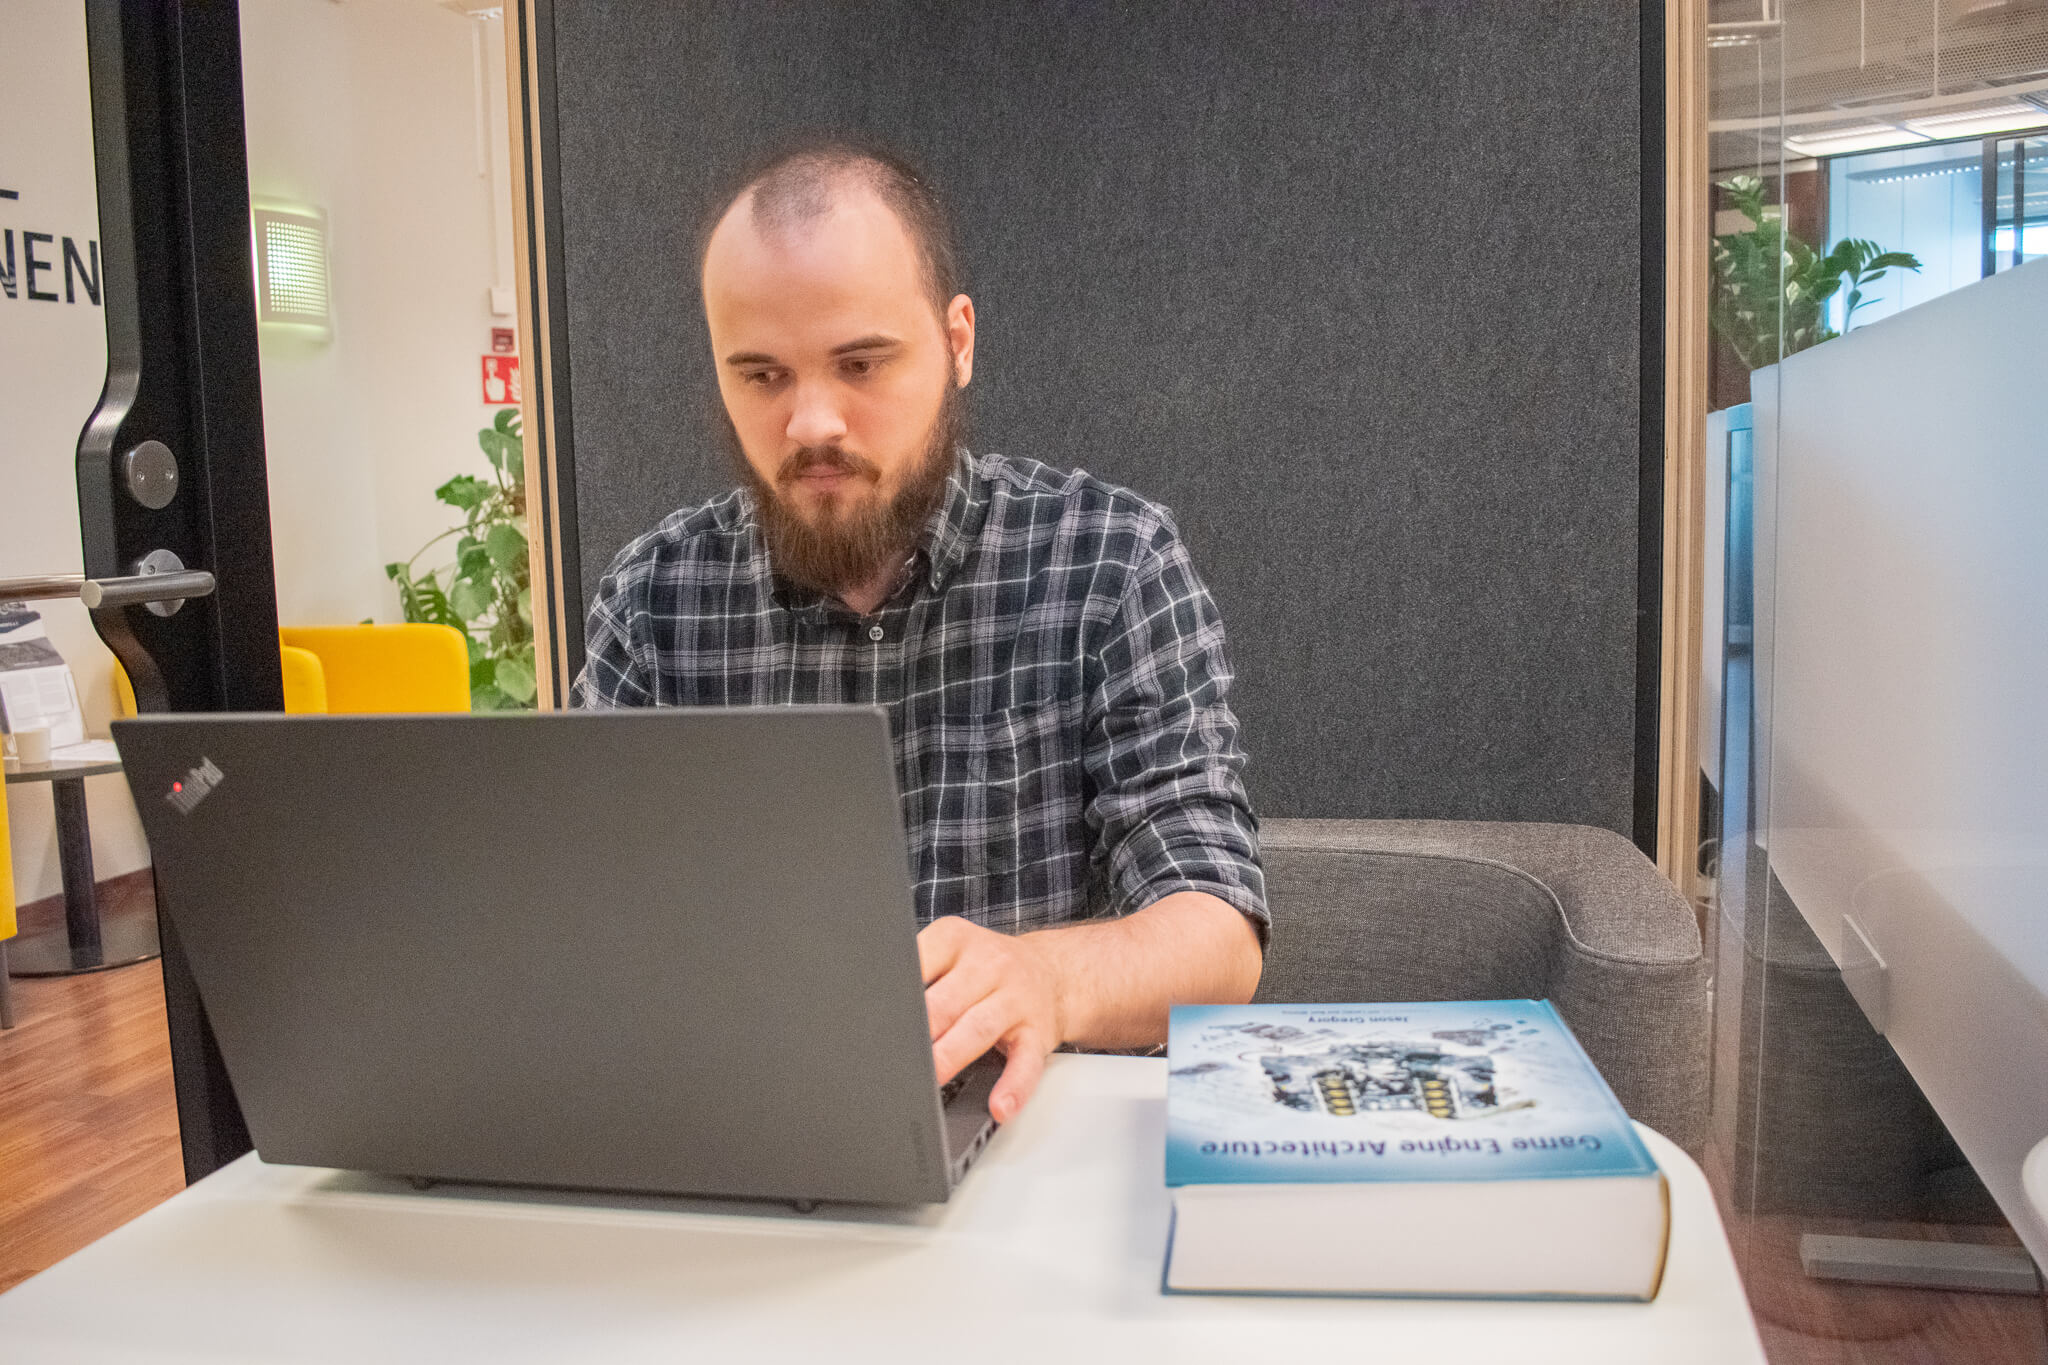 Developer Jevgeni working on simulation software on a laptop with a closed book on the table